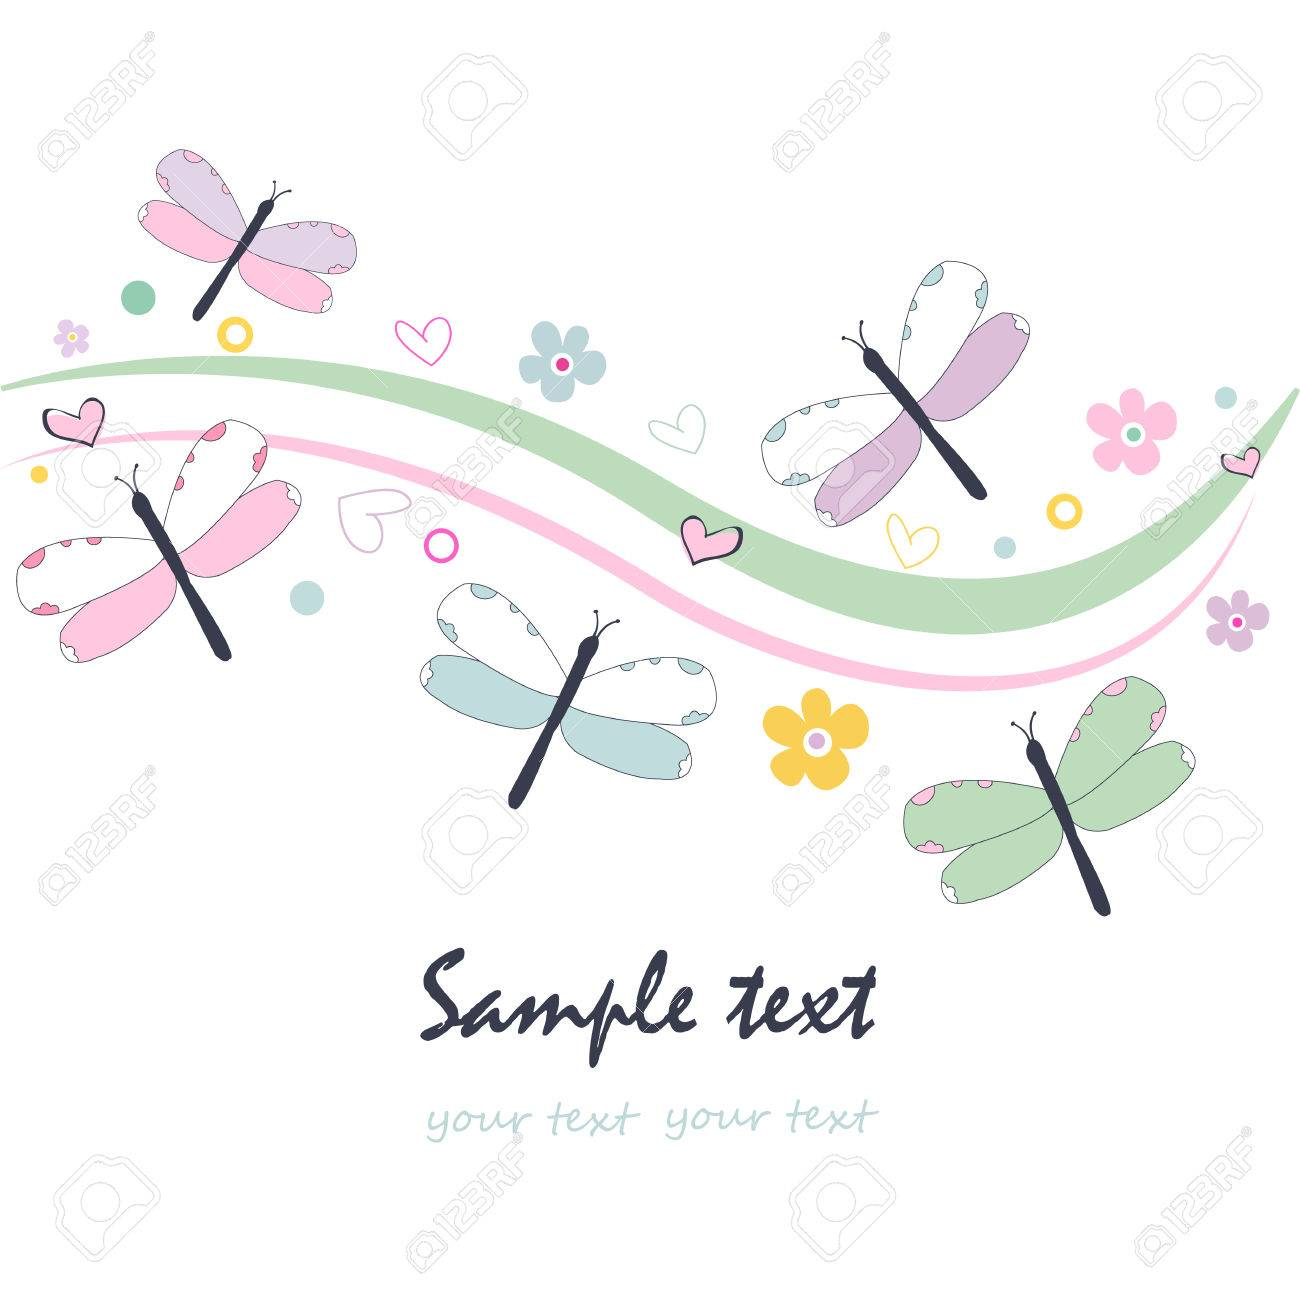 Colorful floral greeting card with dragonfly vector - 40260665